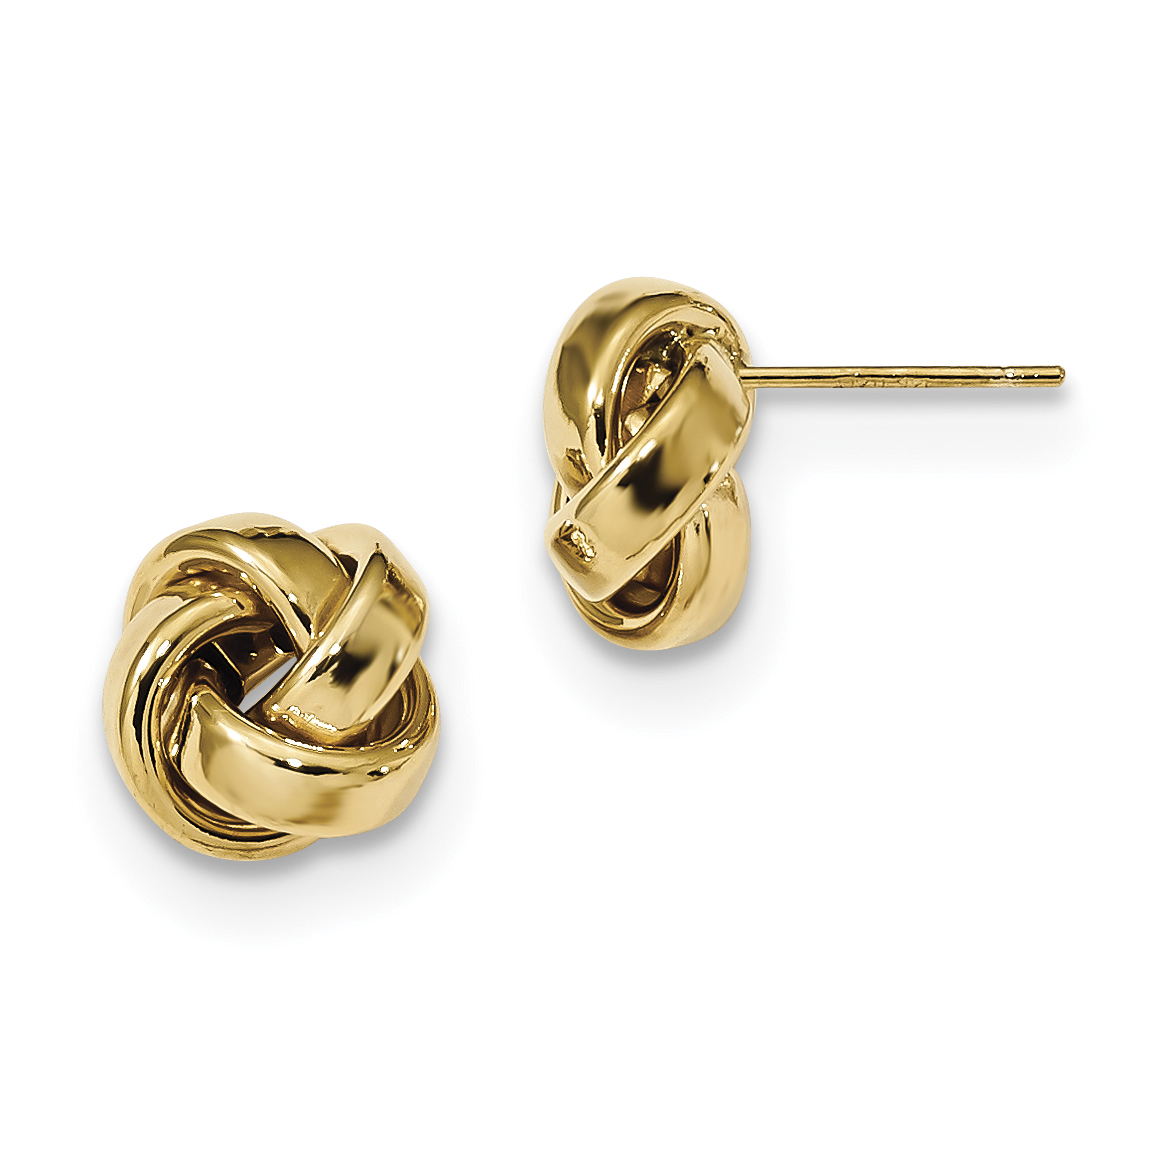 Button Earrings: 14kt Yellow Gold Love Knot Post Stud Ball Button Earrings